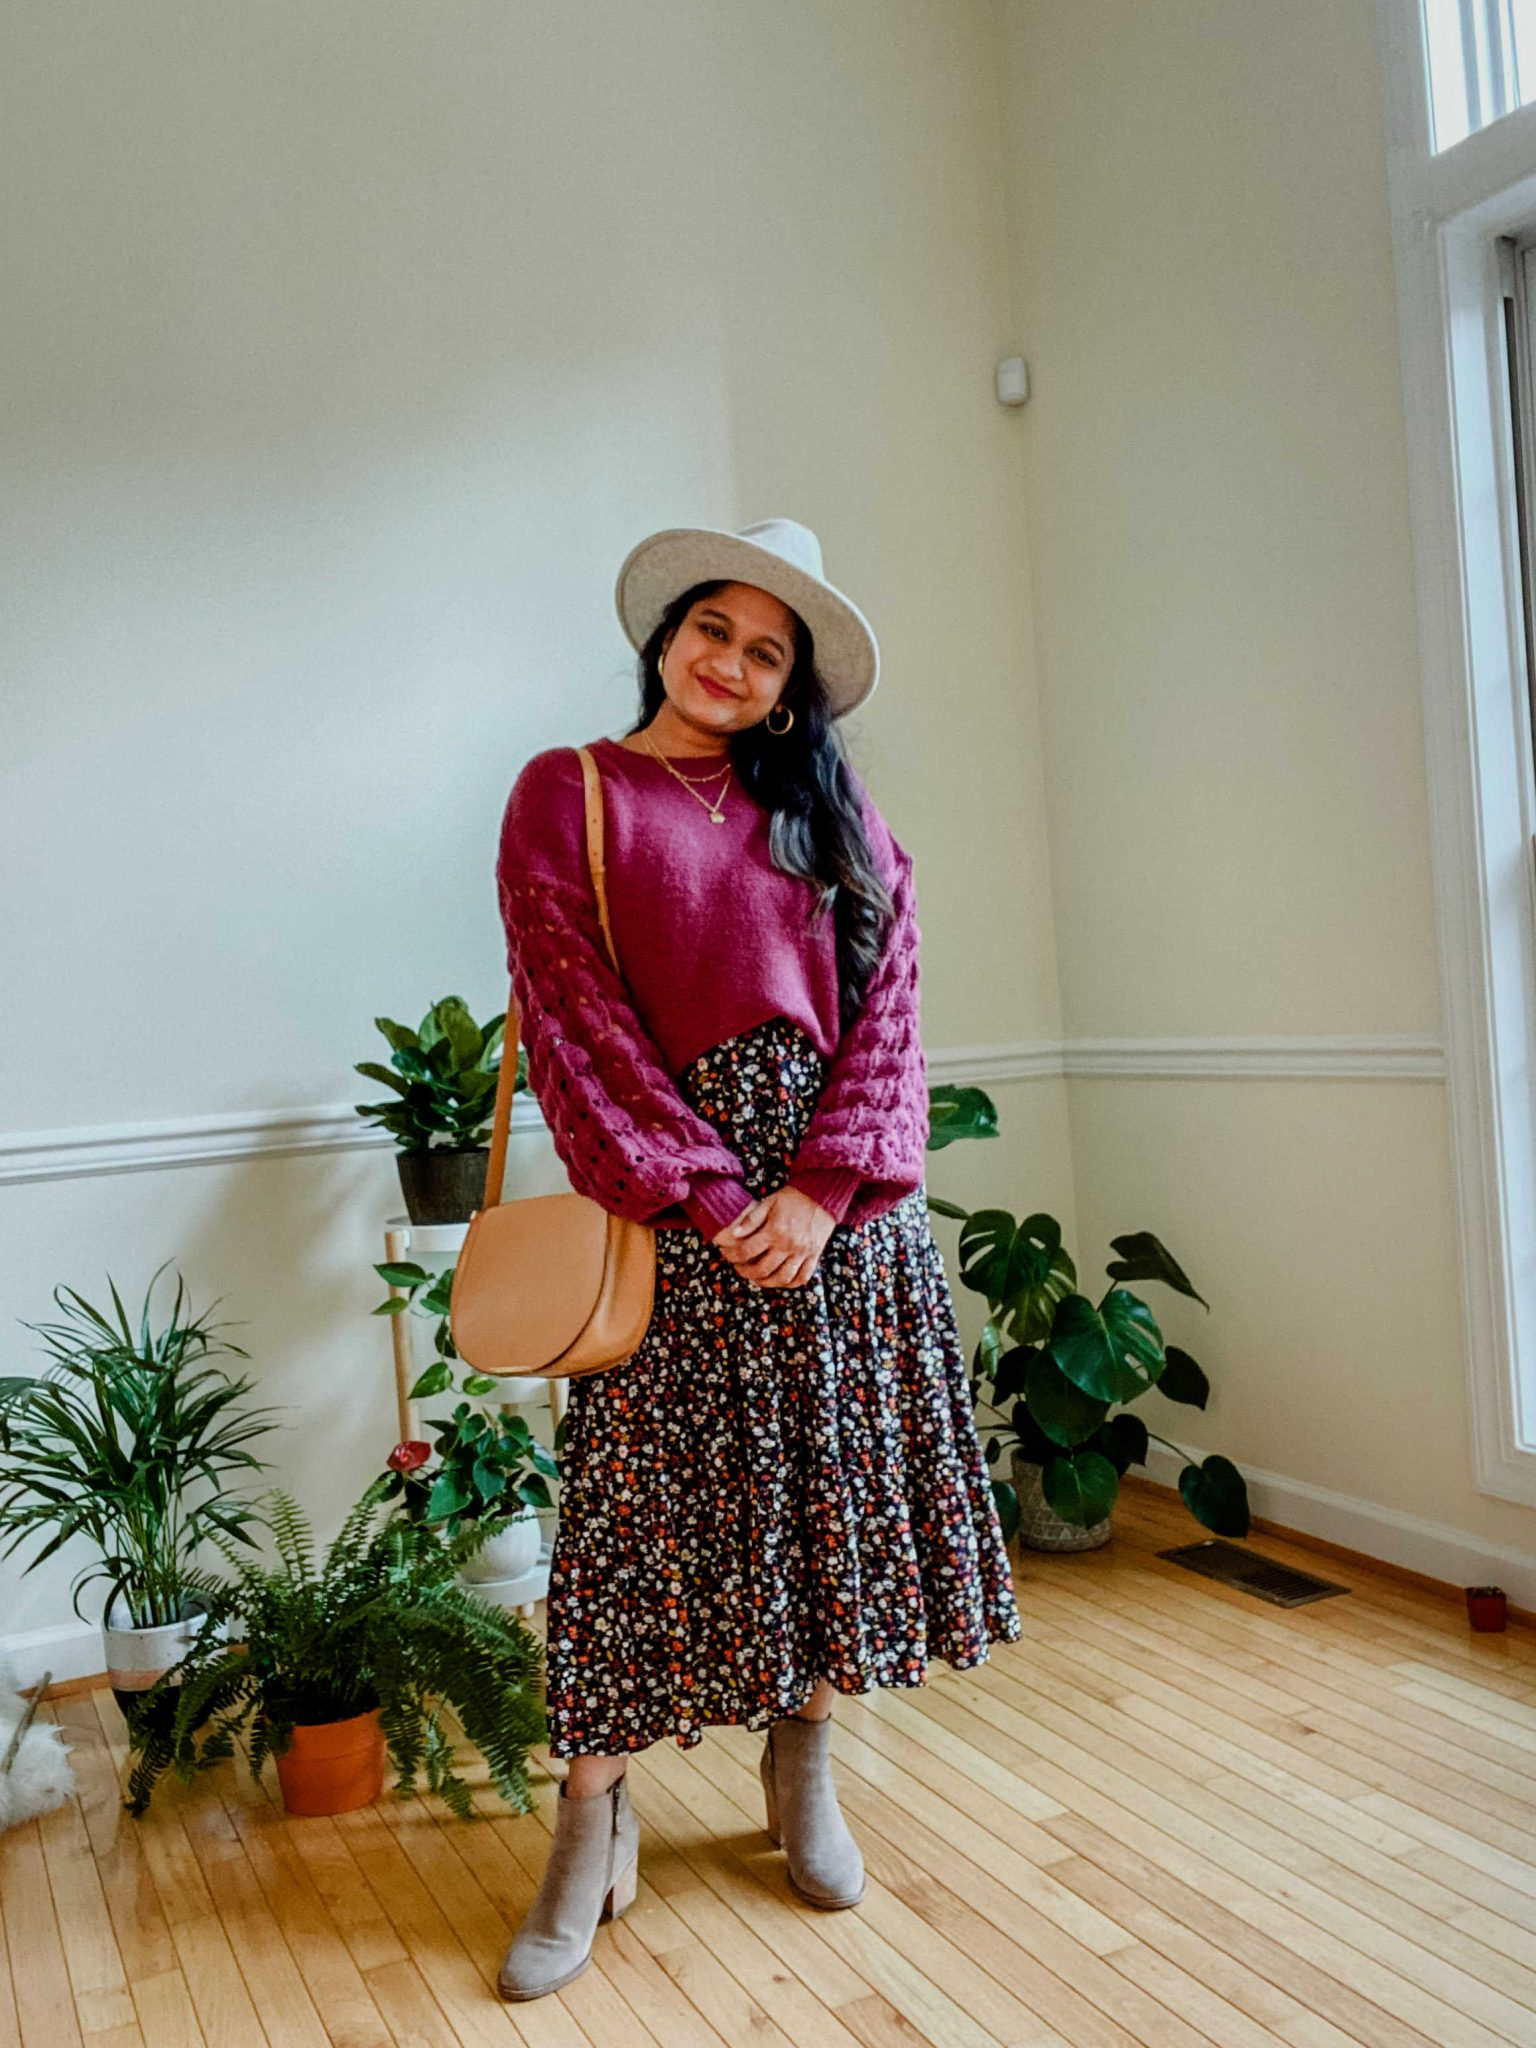 Wearing Ditsy Floral Sleeveless Tiered Midi Dress, pink lily boutique purple sweater,Blondo ankle booties, lack of color grey fedora hat 1 | Summer Dresses by popular Maryland modest fashion blog, Dreaming Loud: image of a woman Wearing Ditsy Floral Sleeveless Tiered Midi Dress,pink lily boutique purple sweater,Blondo ankle booties, and lack of color grey fedora hat.